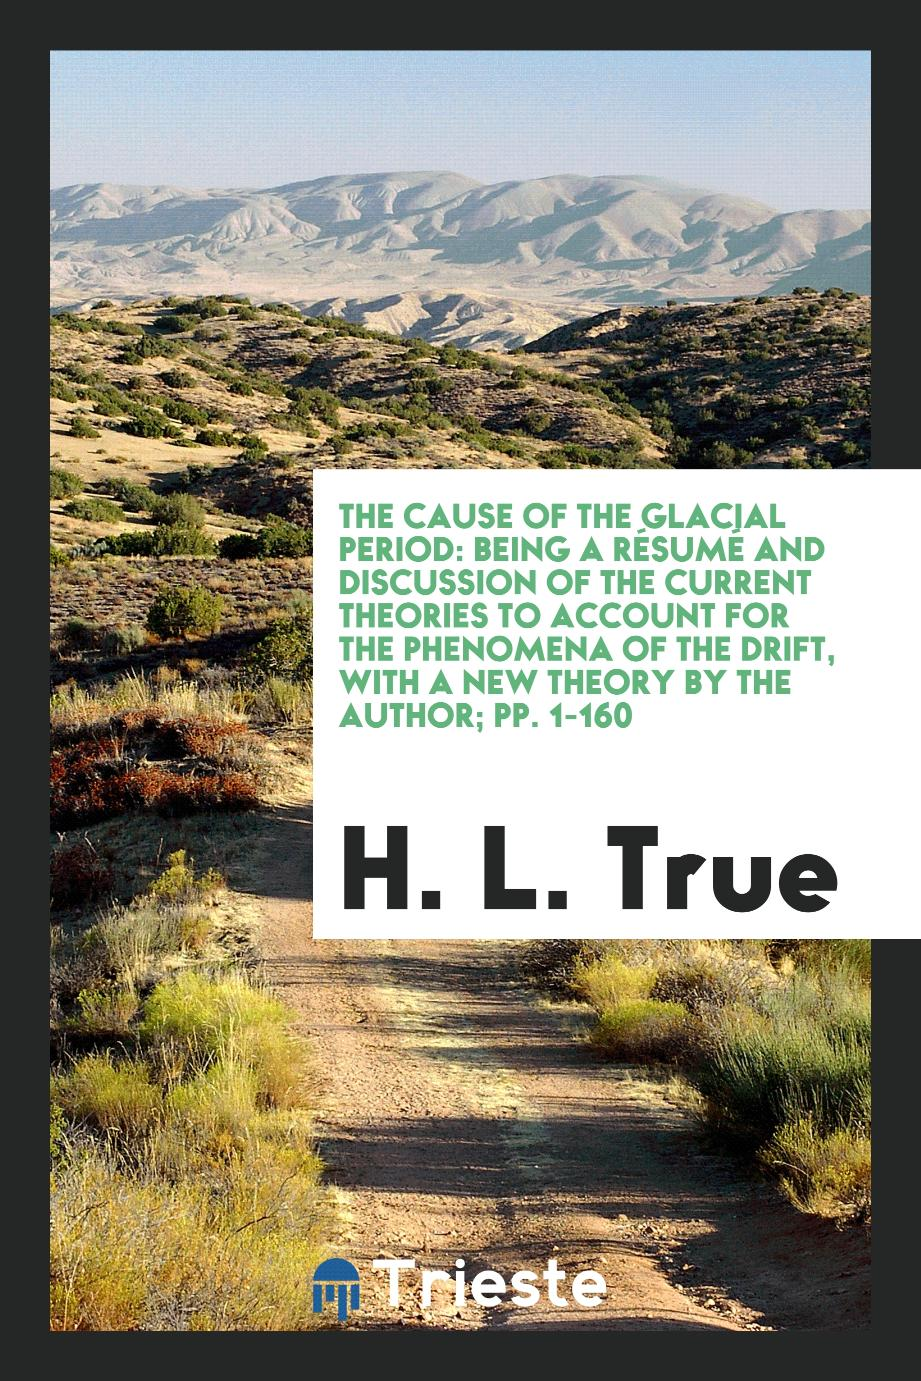 The Cause of the Glacial Period: Being a Résumé and Discussion of the Current Theories to Account for the Phenomena of the Drift, with a New Theory by the Author; pp. 1-160